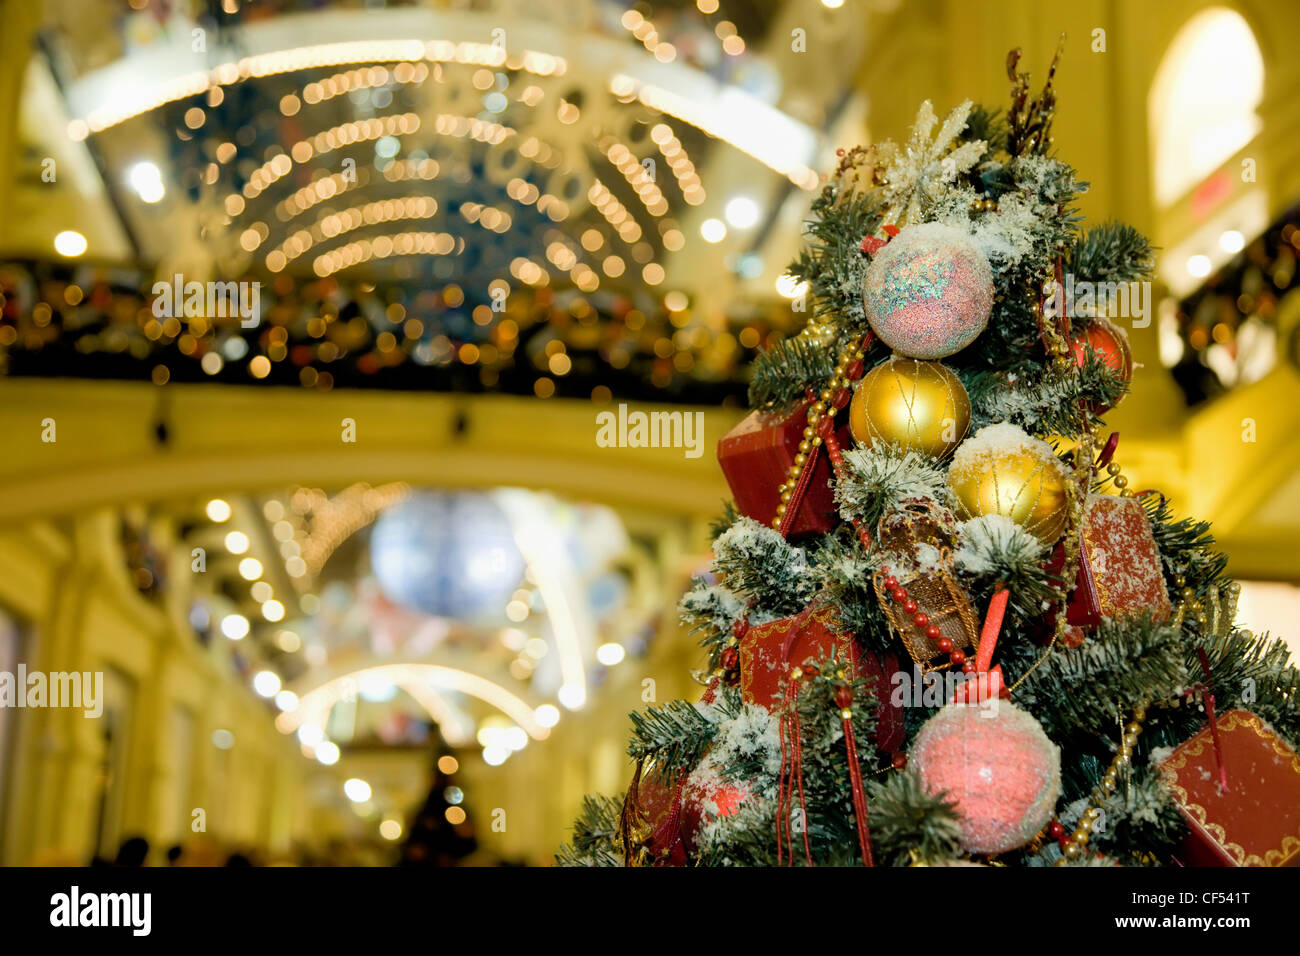 Fur-tree densely covered by Christmas ornaments in shopping centre - Stock Image